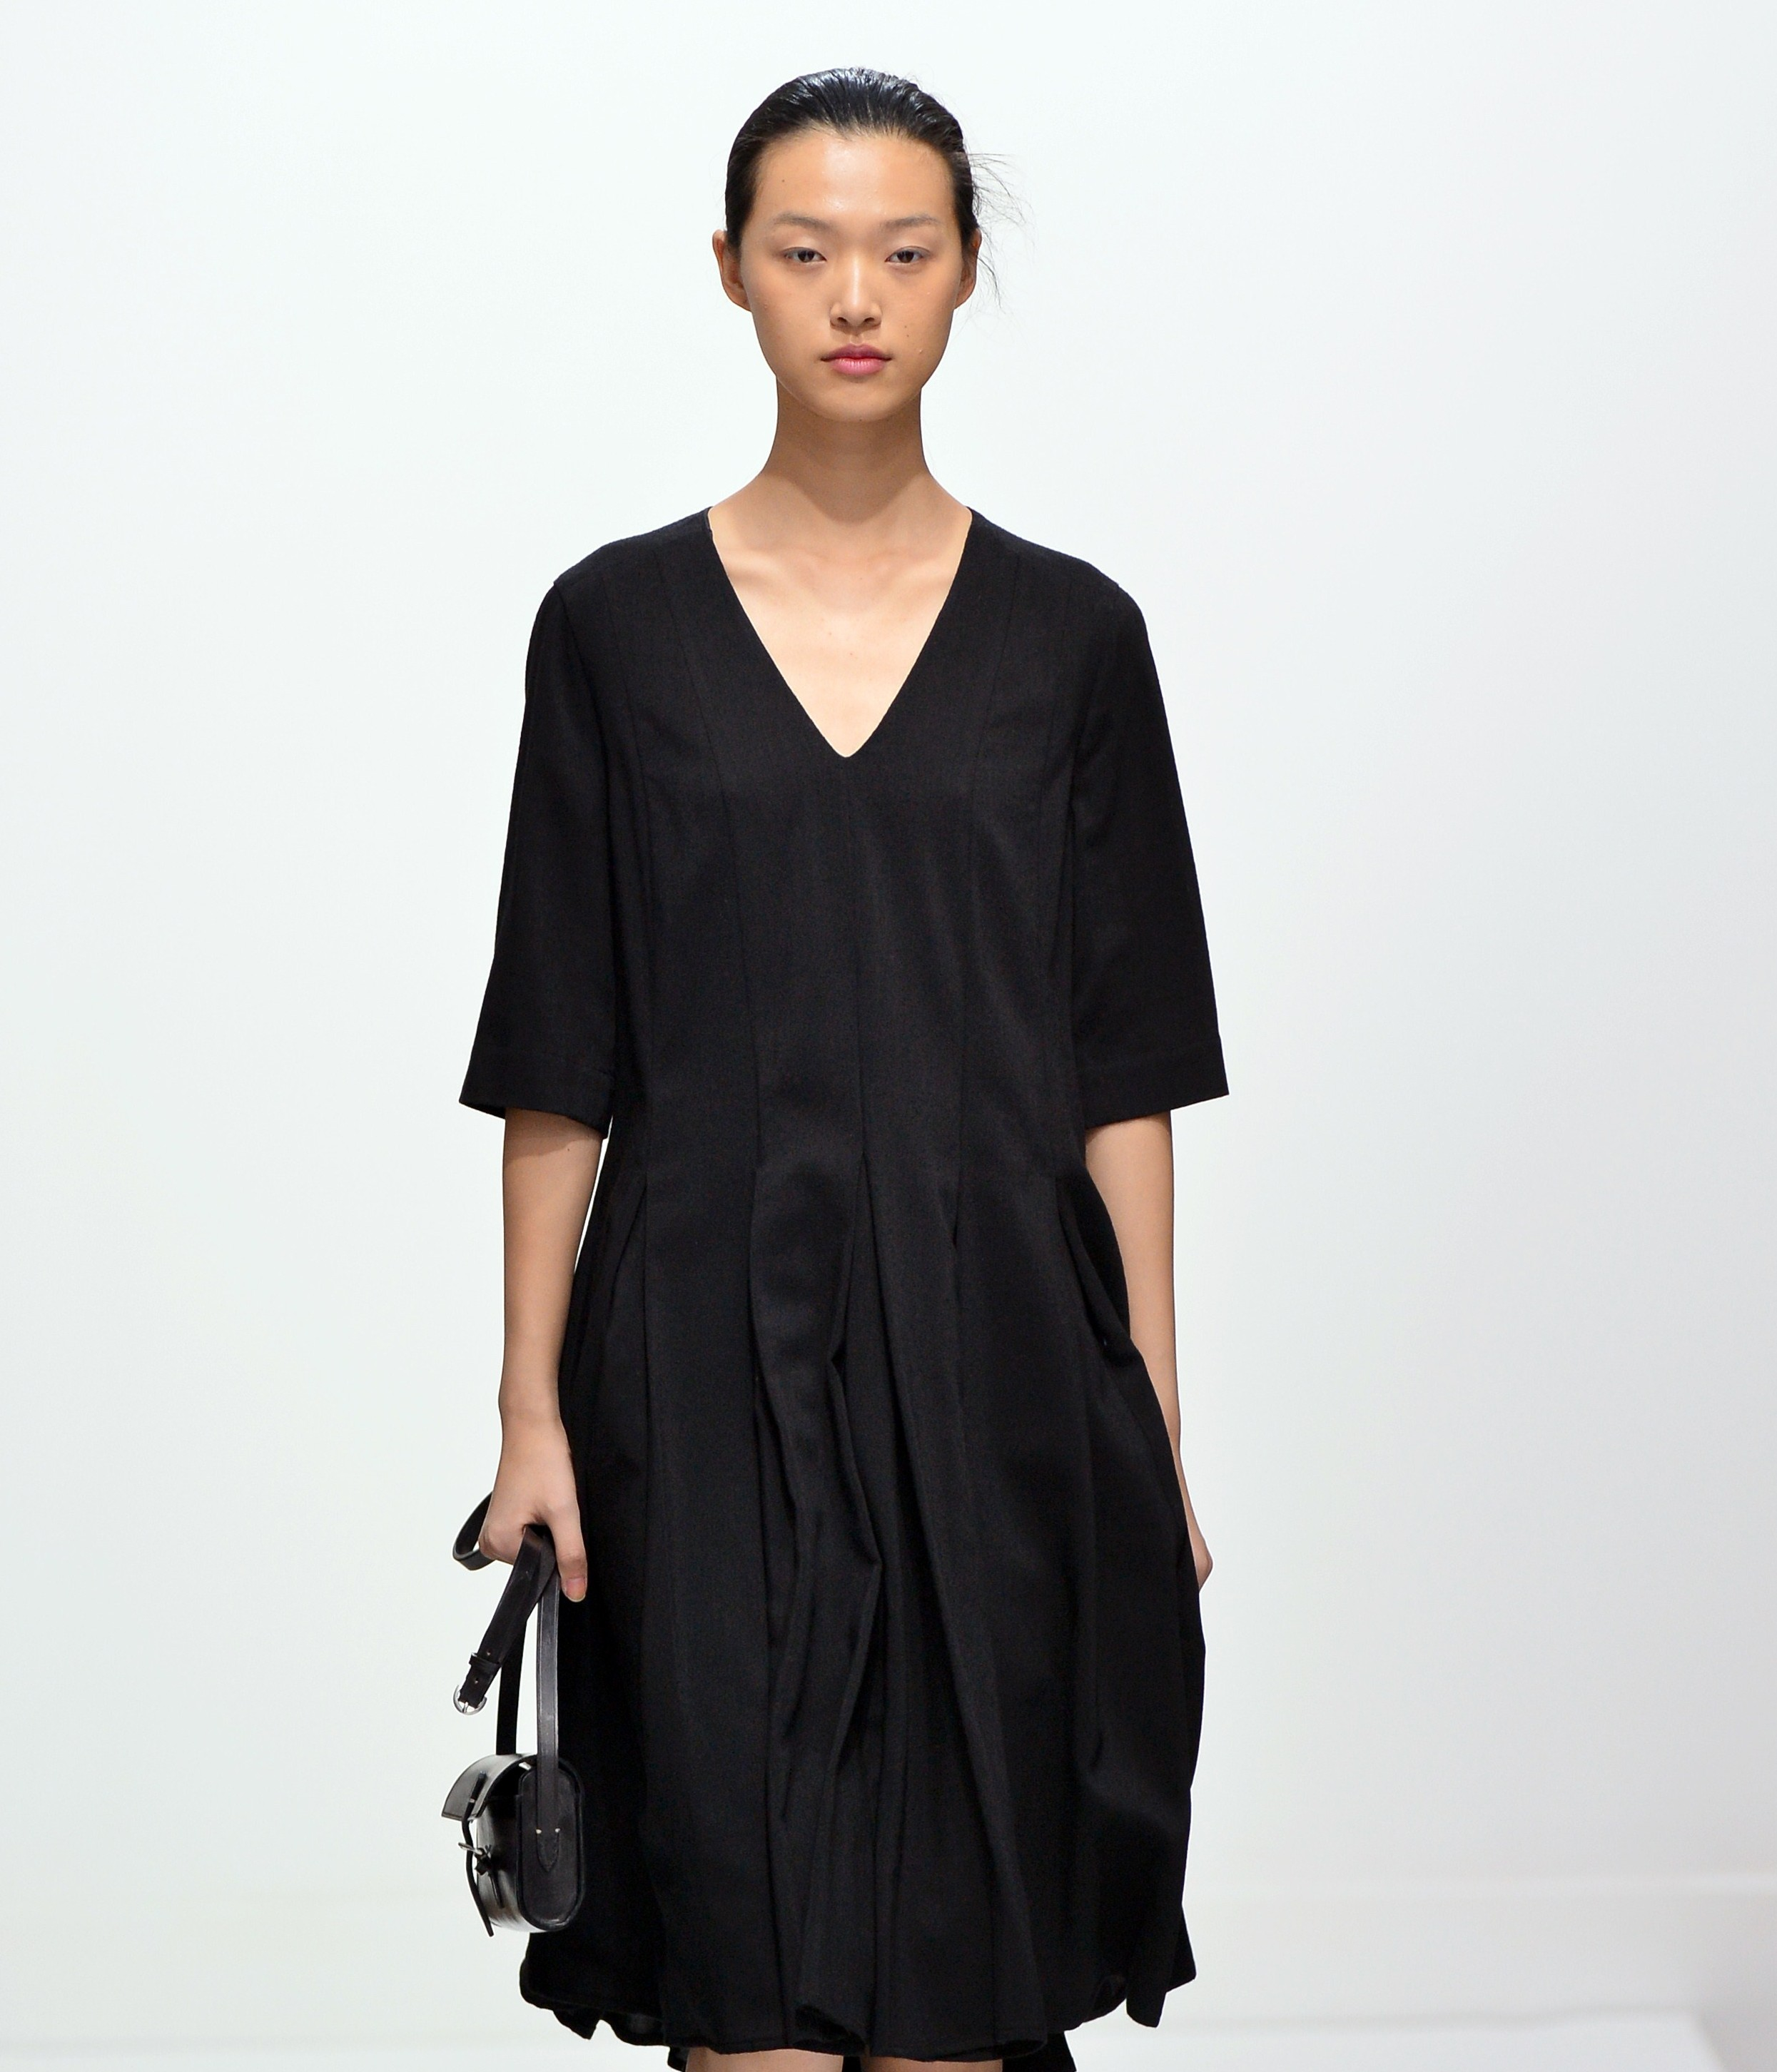 London Fashion Week: Margaret Howell offers sumptuous minimalism